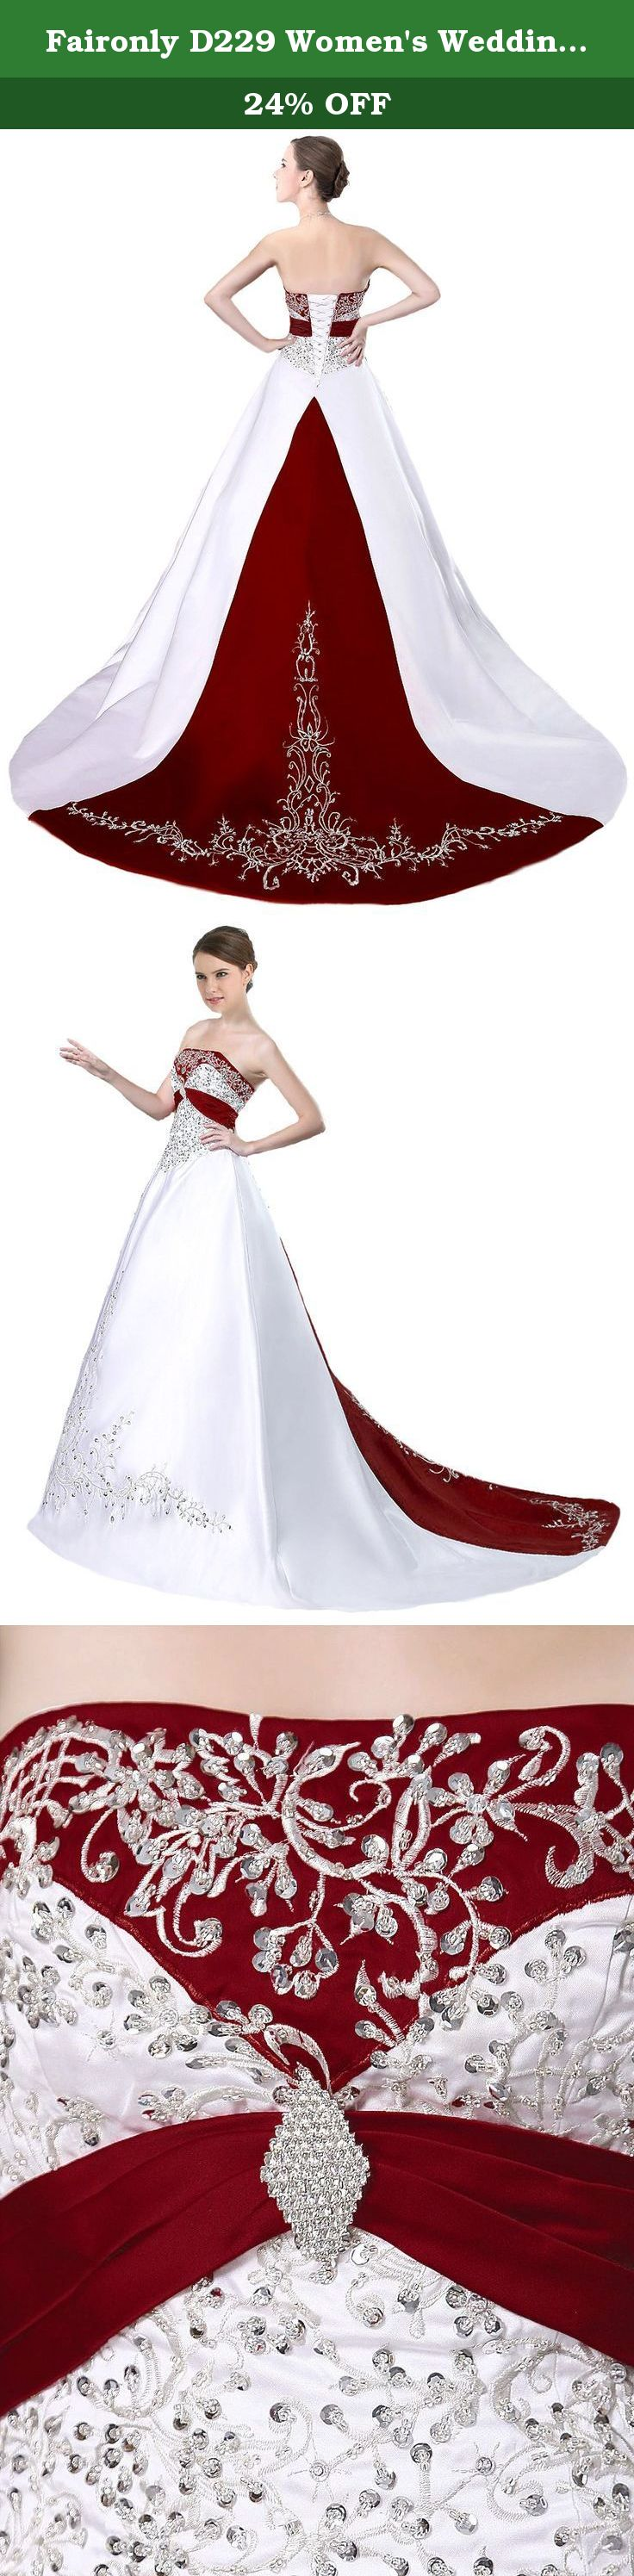 Wedding dresses for small bust  Faironly D Womenus Wedding Dress Bridal Gown XSmall White Red